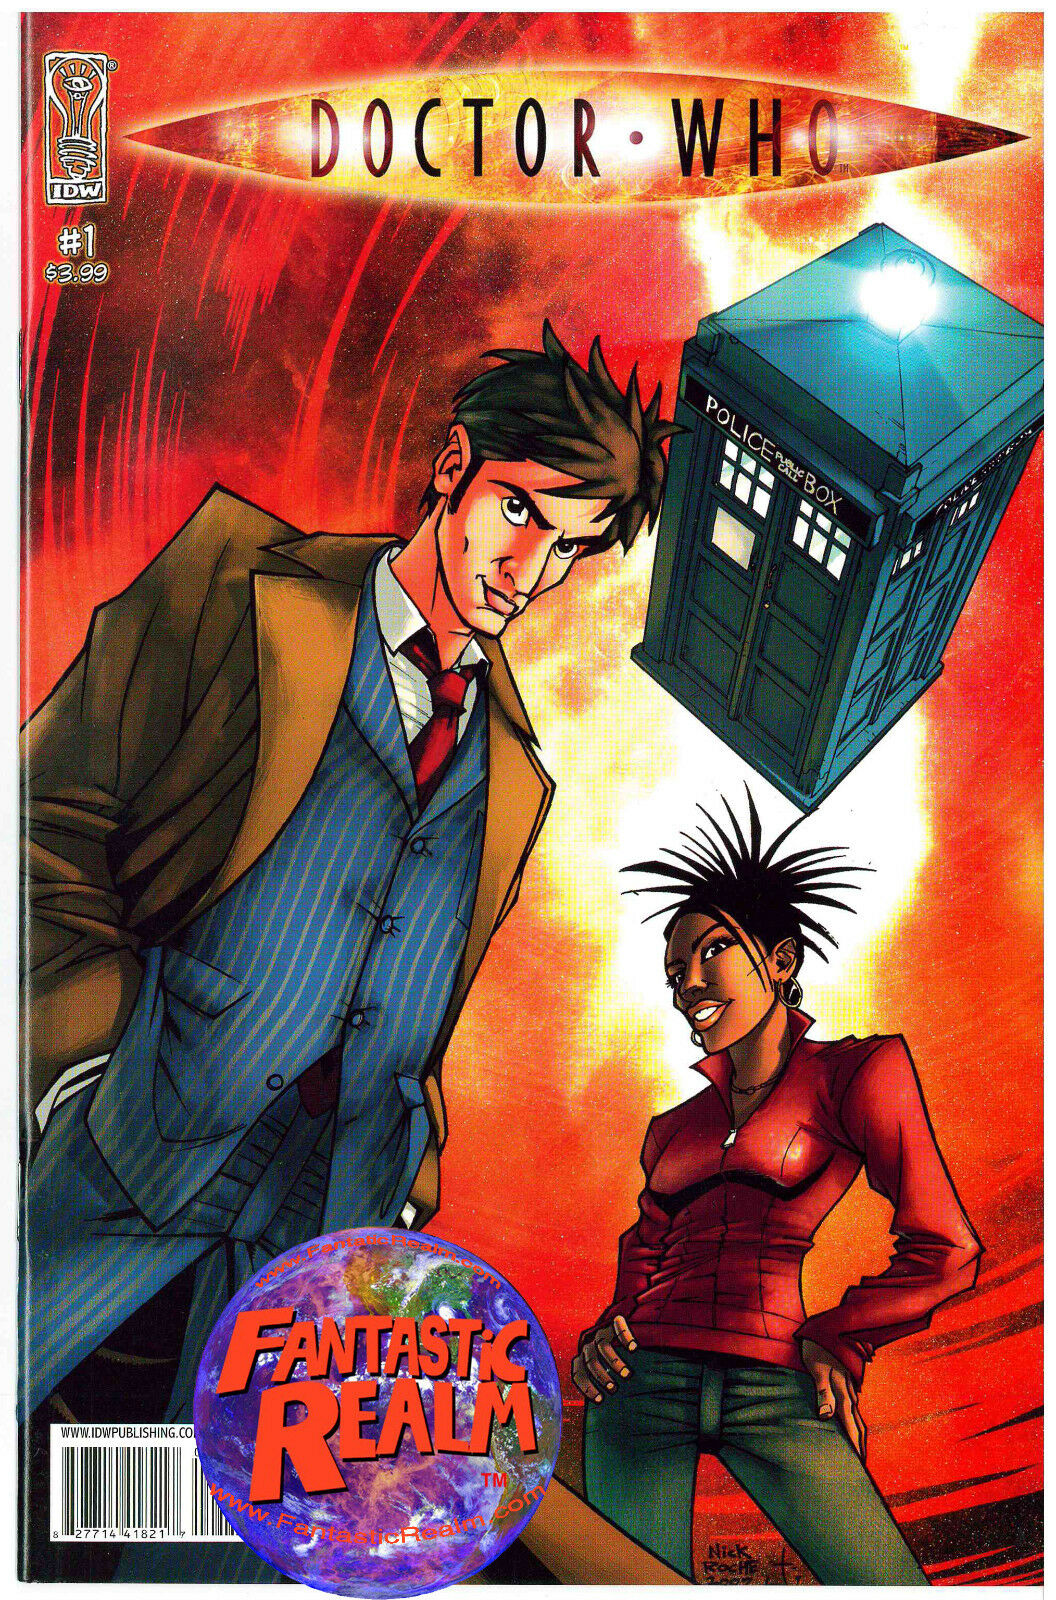 DOCTOR WHO #1 IDW COMICS